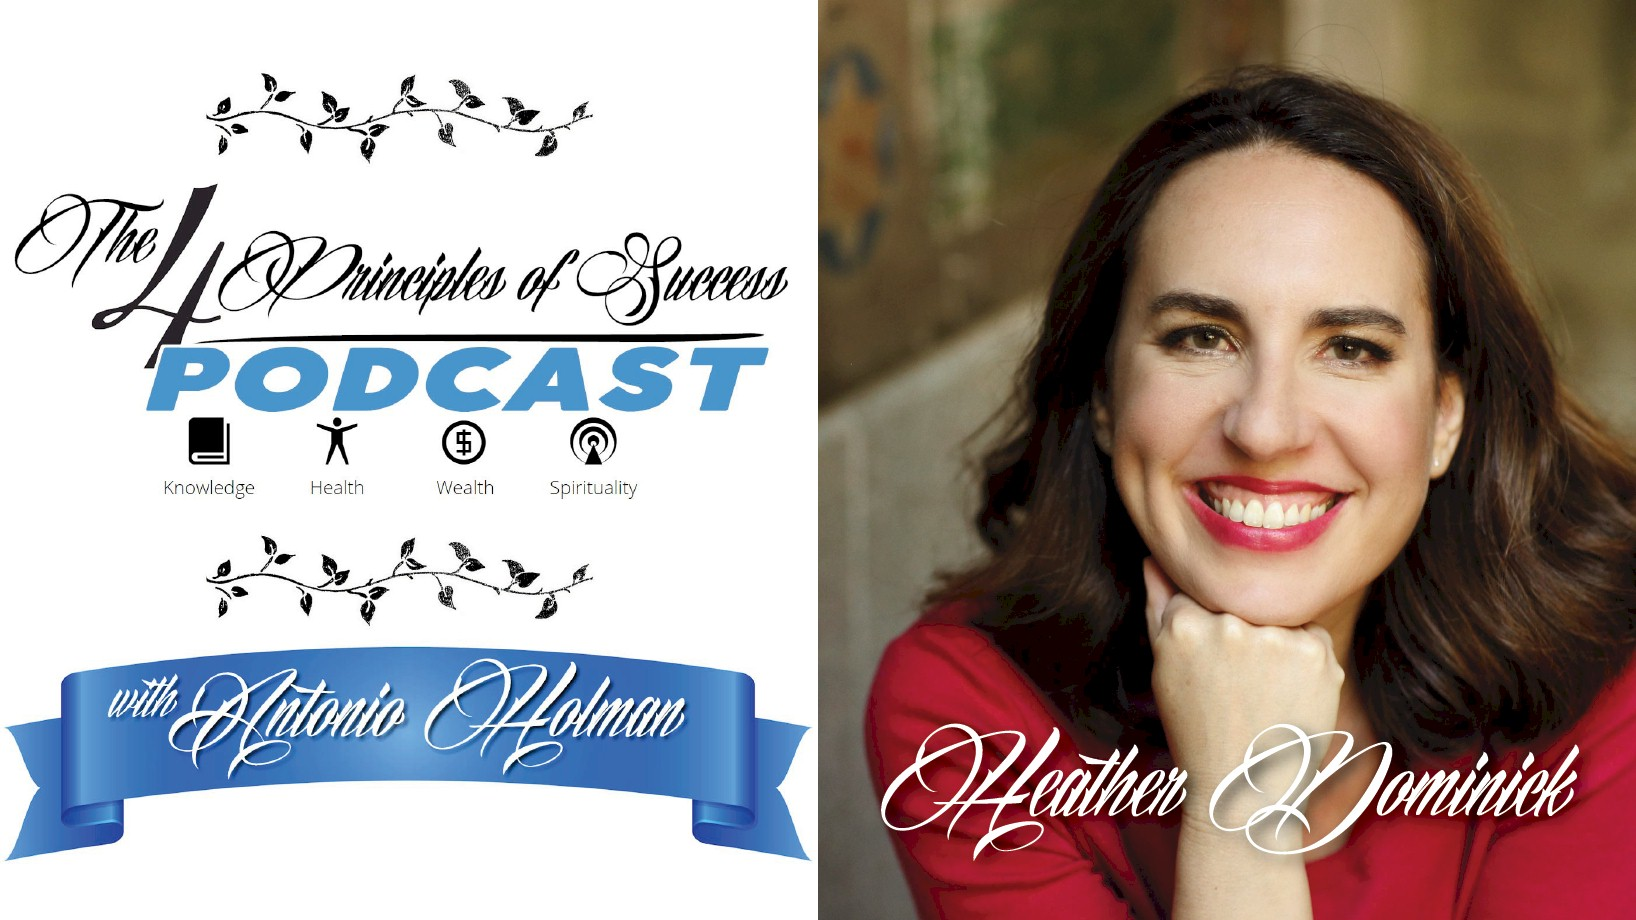 The 4 Principles of Success with Antonio Holman featuring Heather Dominick